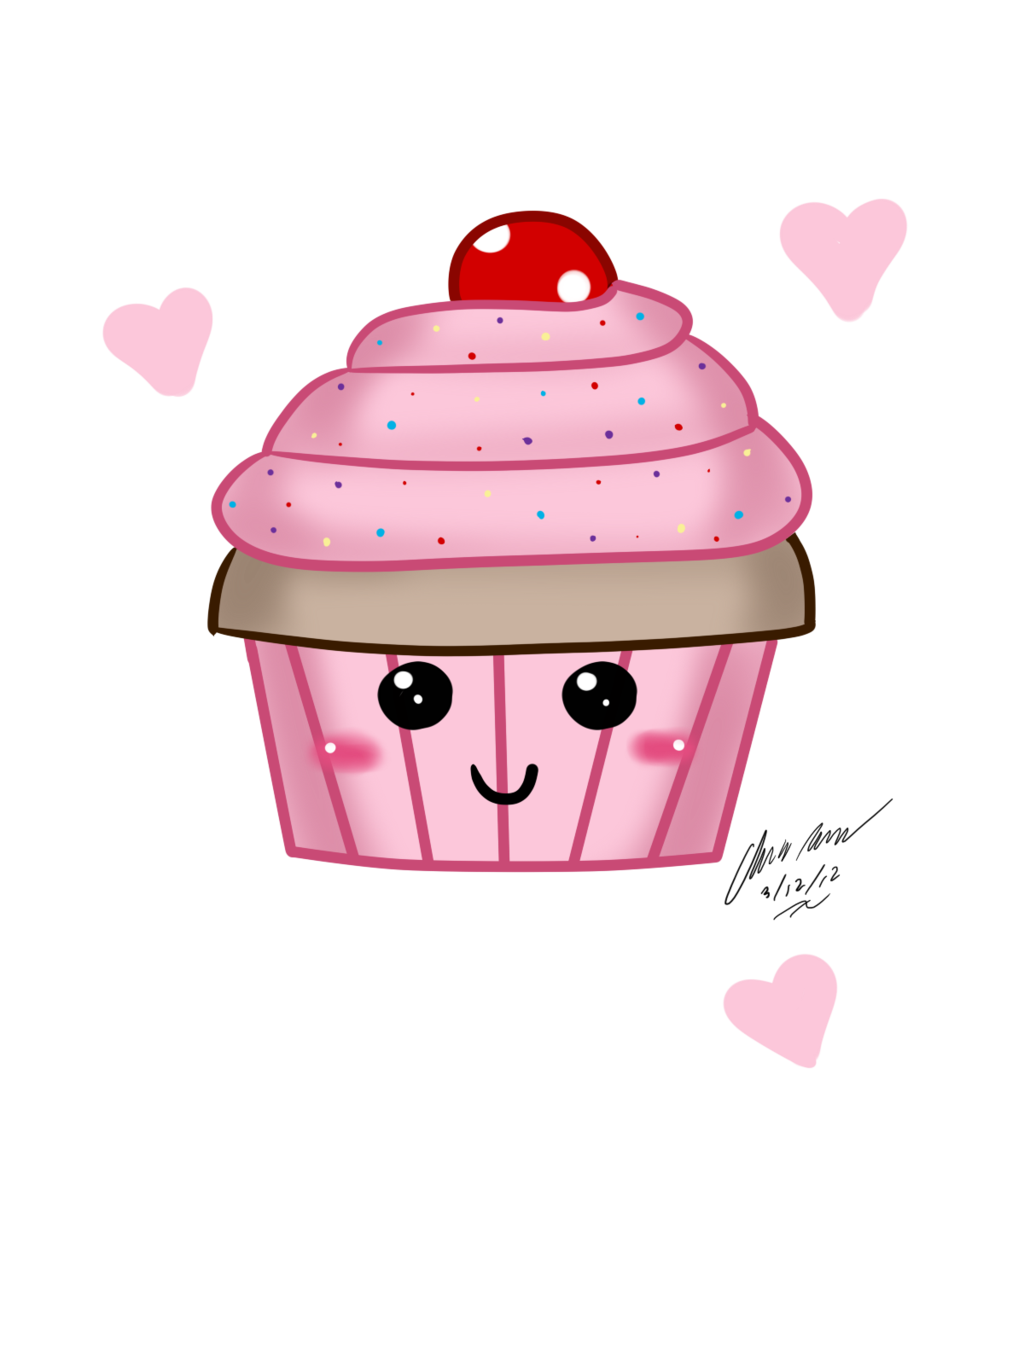 graphic freeuse download Drawn Muffin adorable